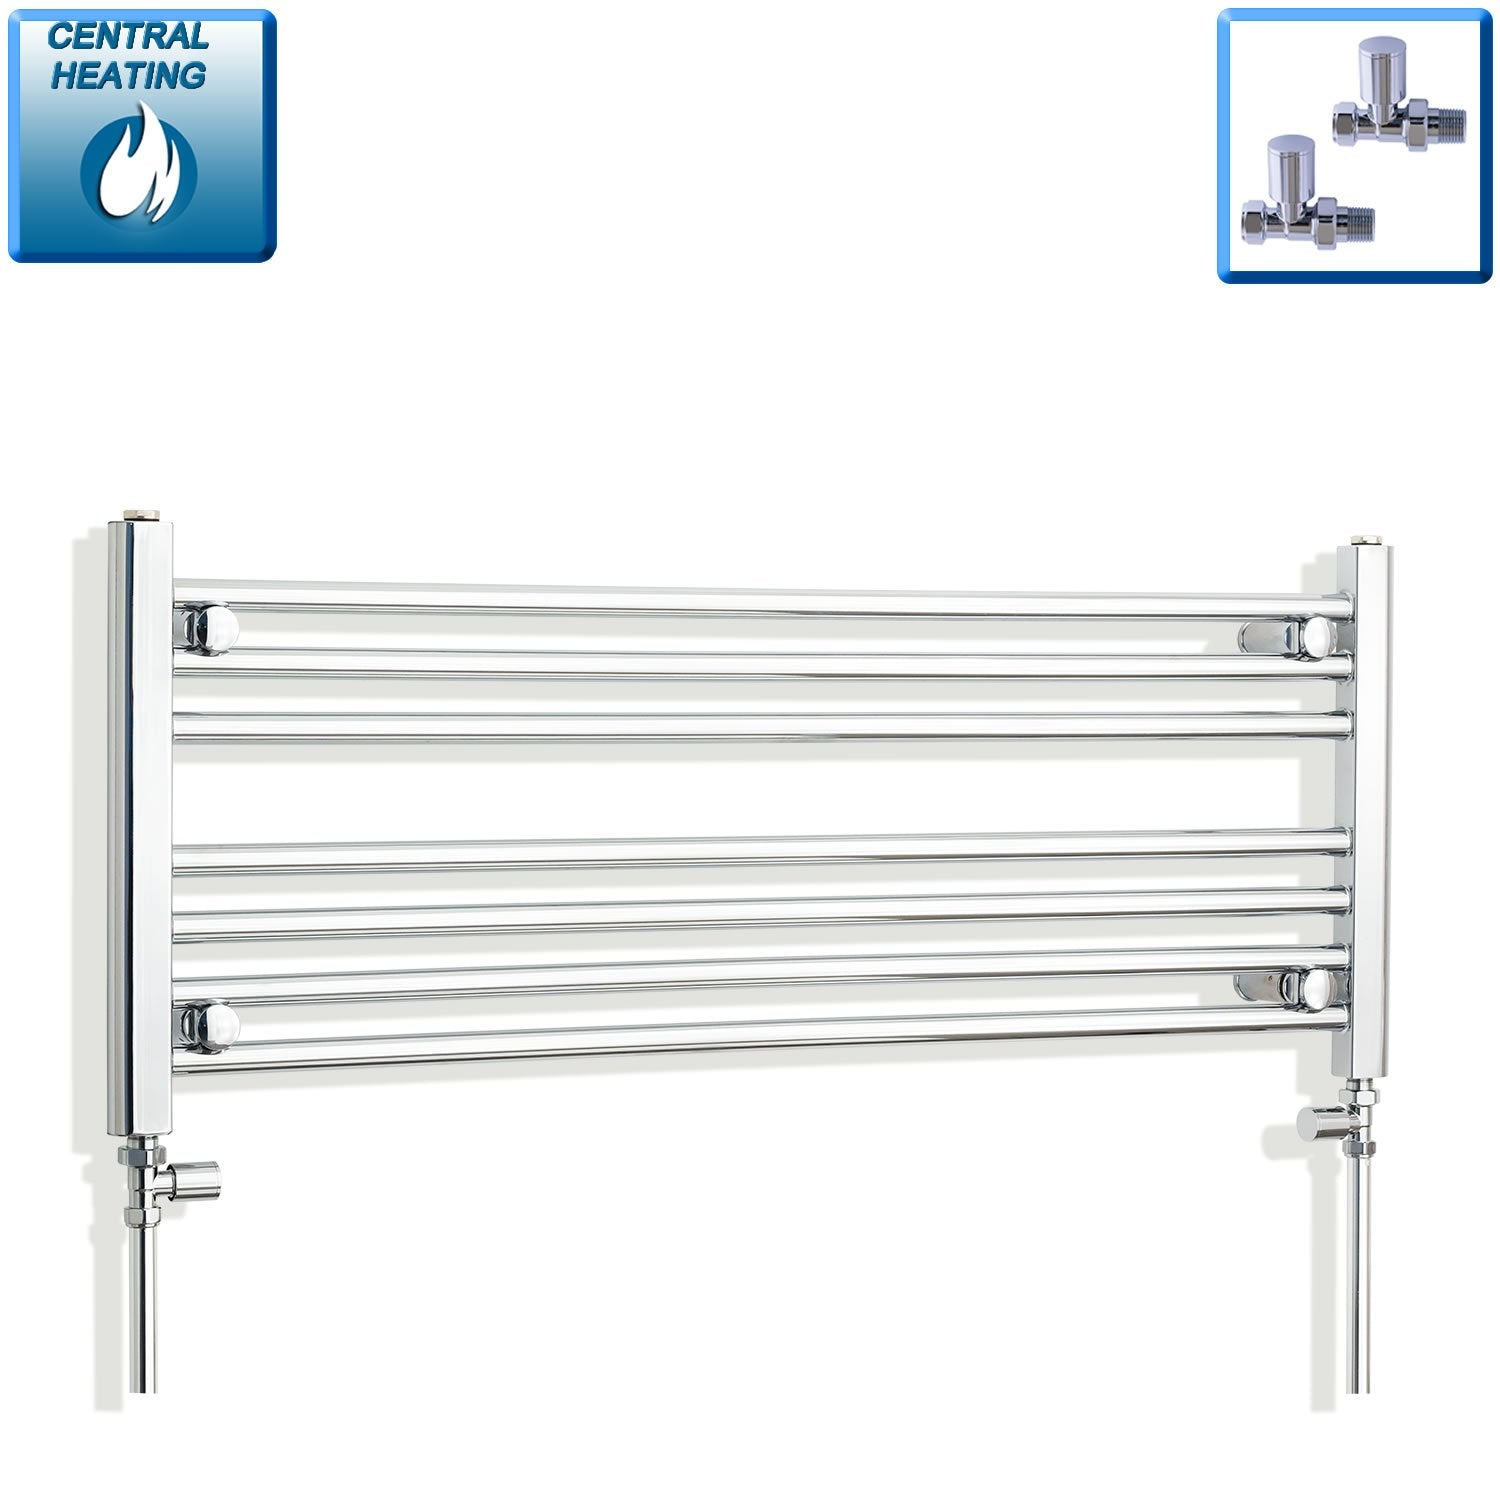 1000mm Wide 400mm High Flat Chrome Heated Towel Rail Radiator HTR,With Straight Valve